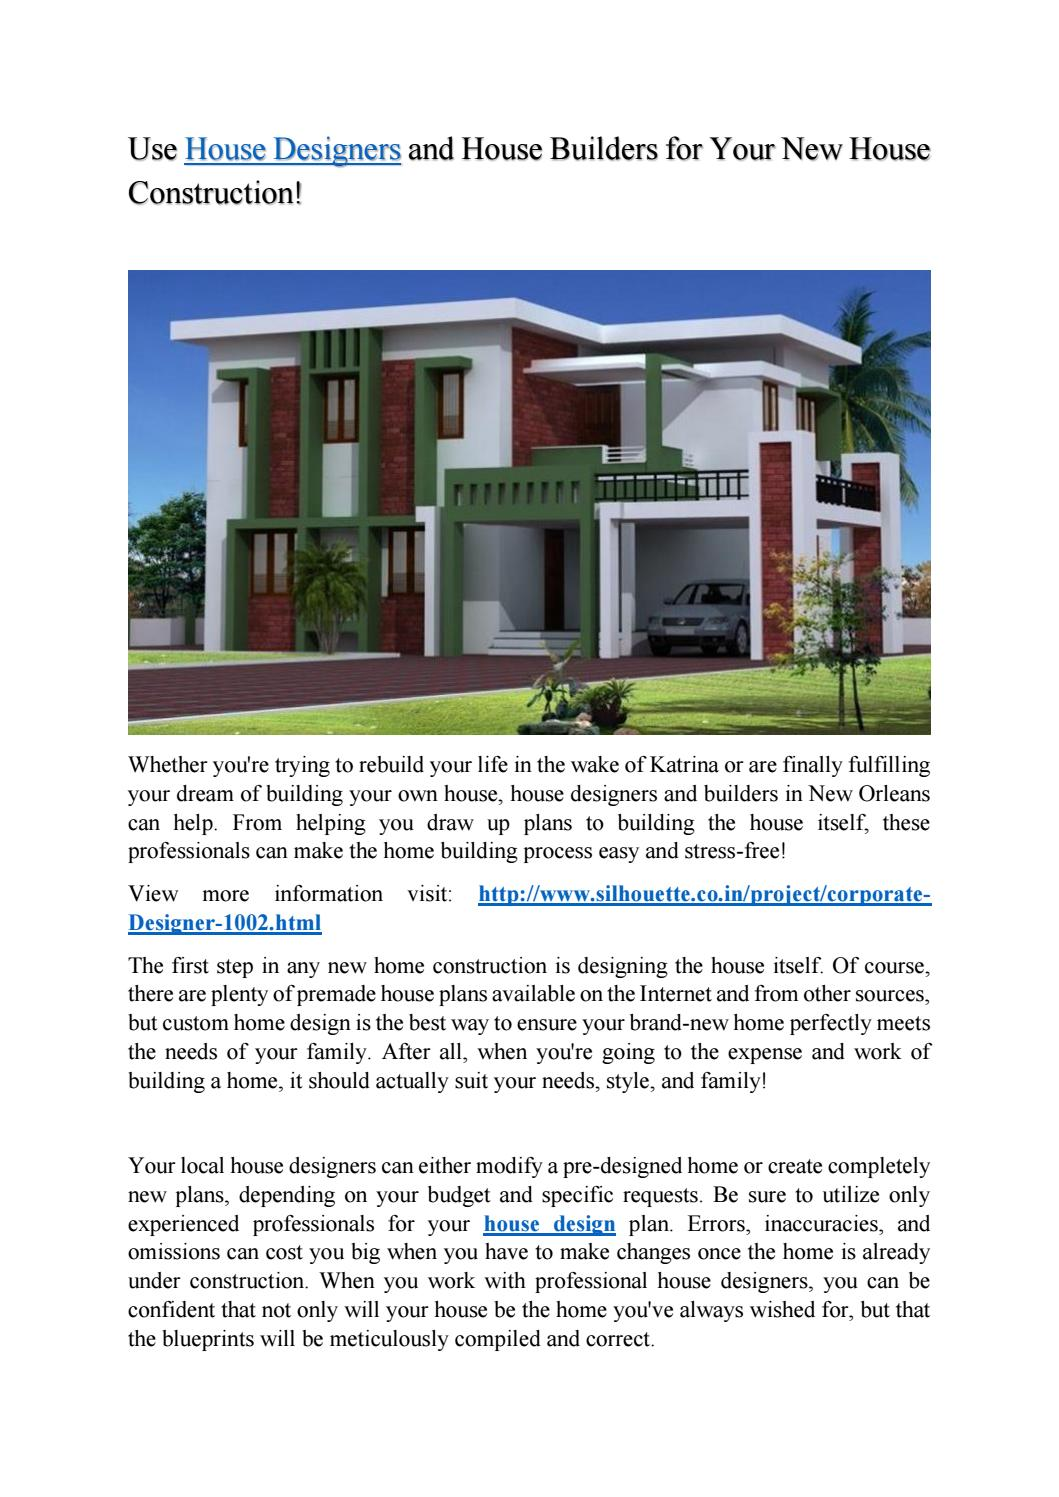 Use House Designers And House Builders For Your New House Construction!